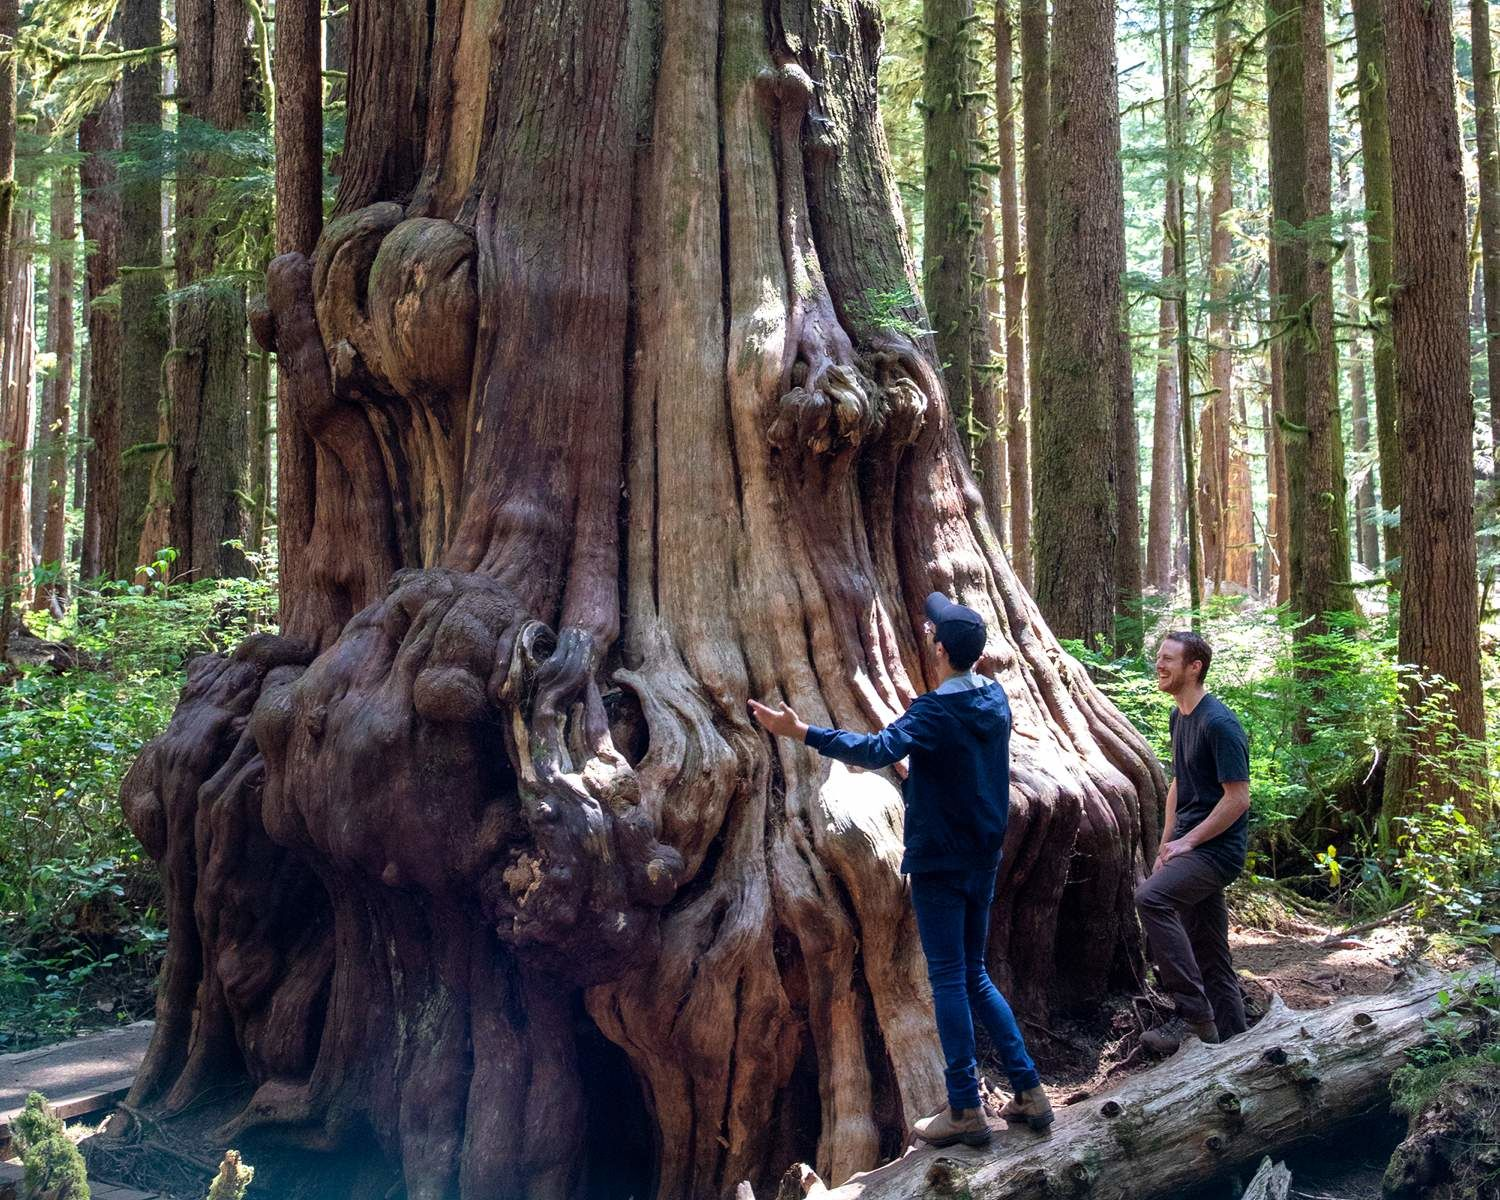 Michael and TJ Watt - the founder of Ancient Forest Alliance in Cathedral Grove, BC